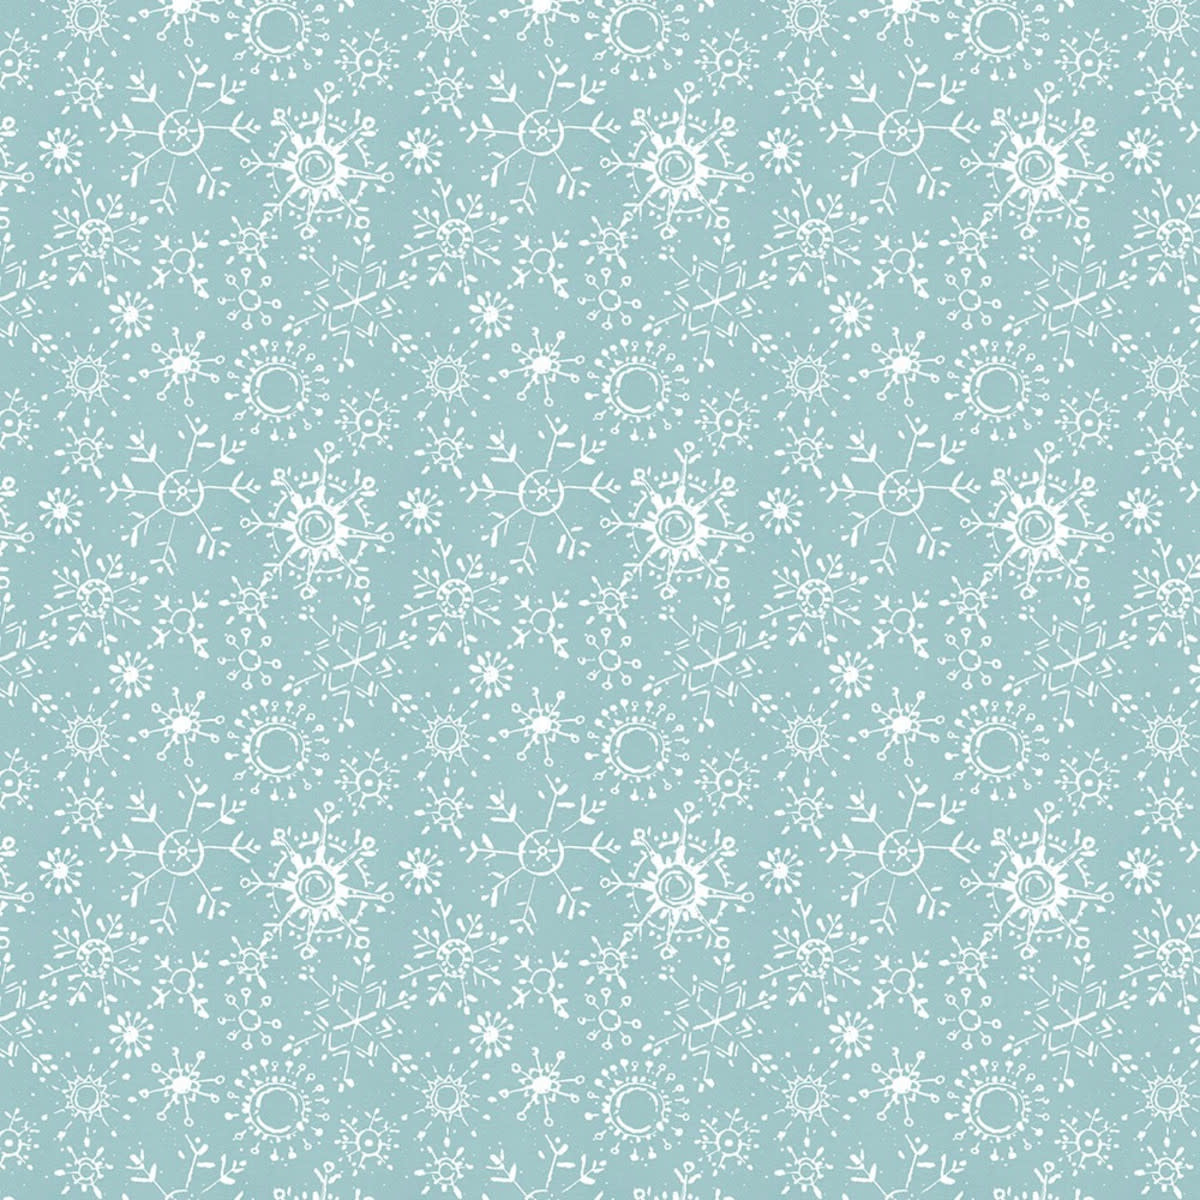 LISA AUDIT A MAGICAL CHRISTMAS, SNOWFLAKES, WHITE ON BLUE (86466-411) $0.20 /CM OR $20/M